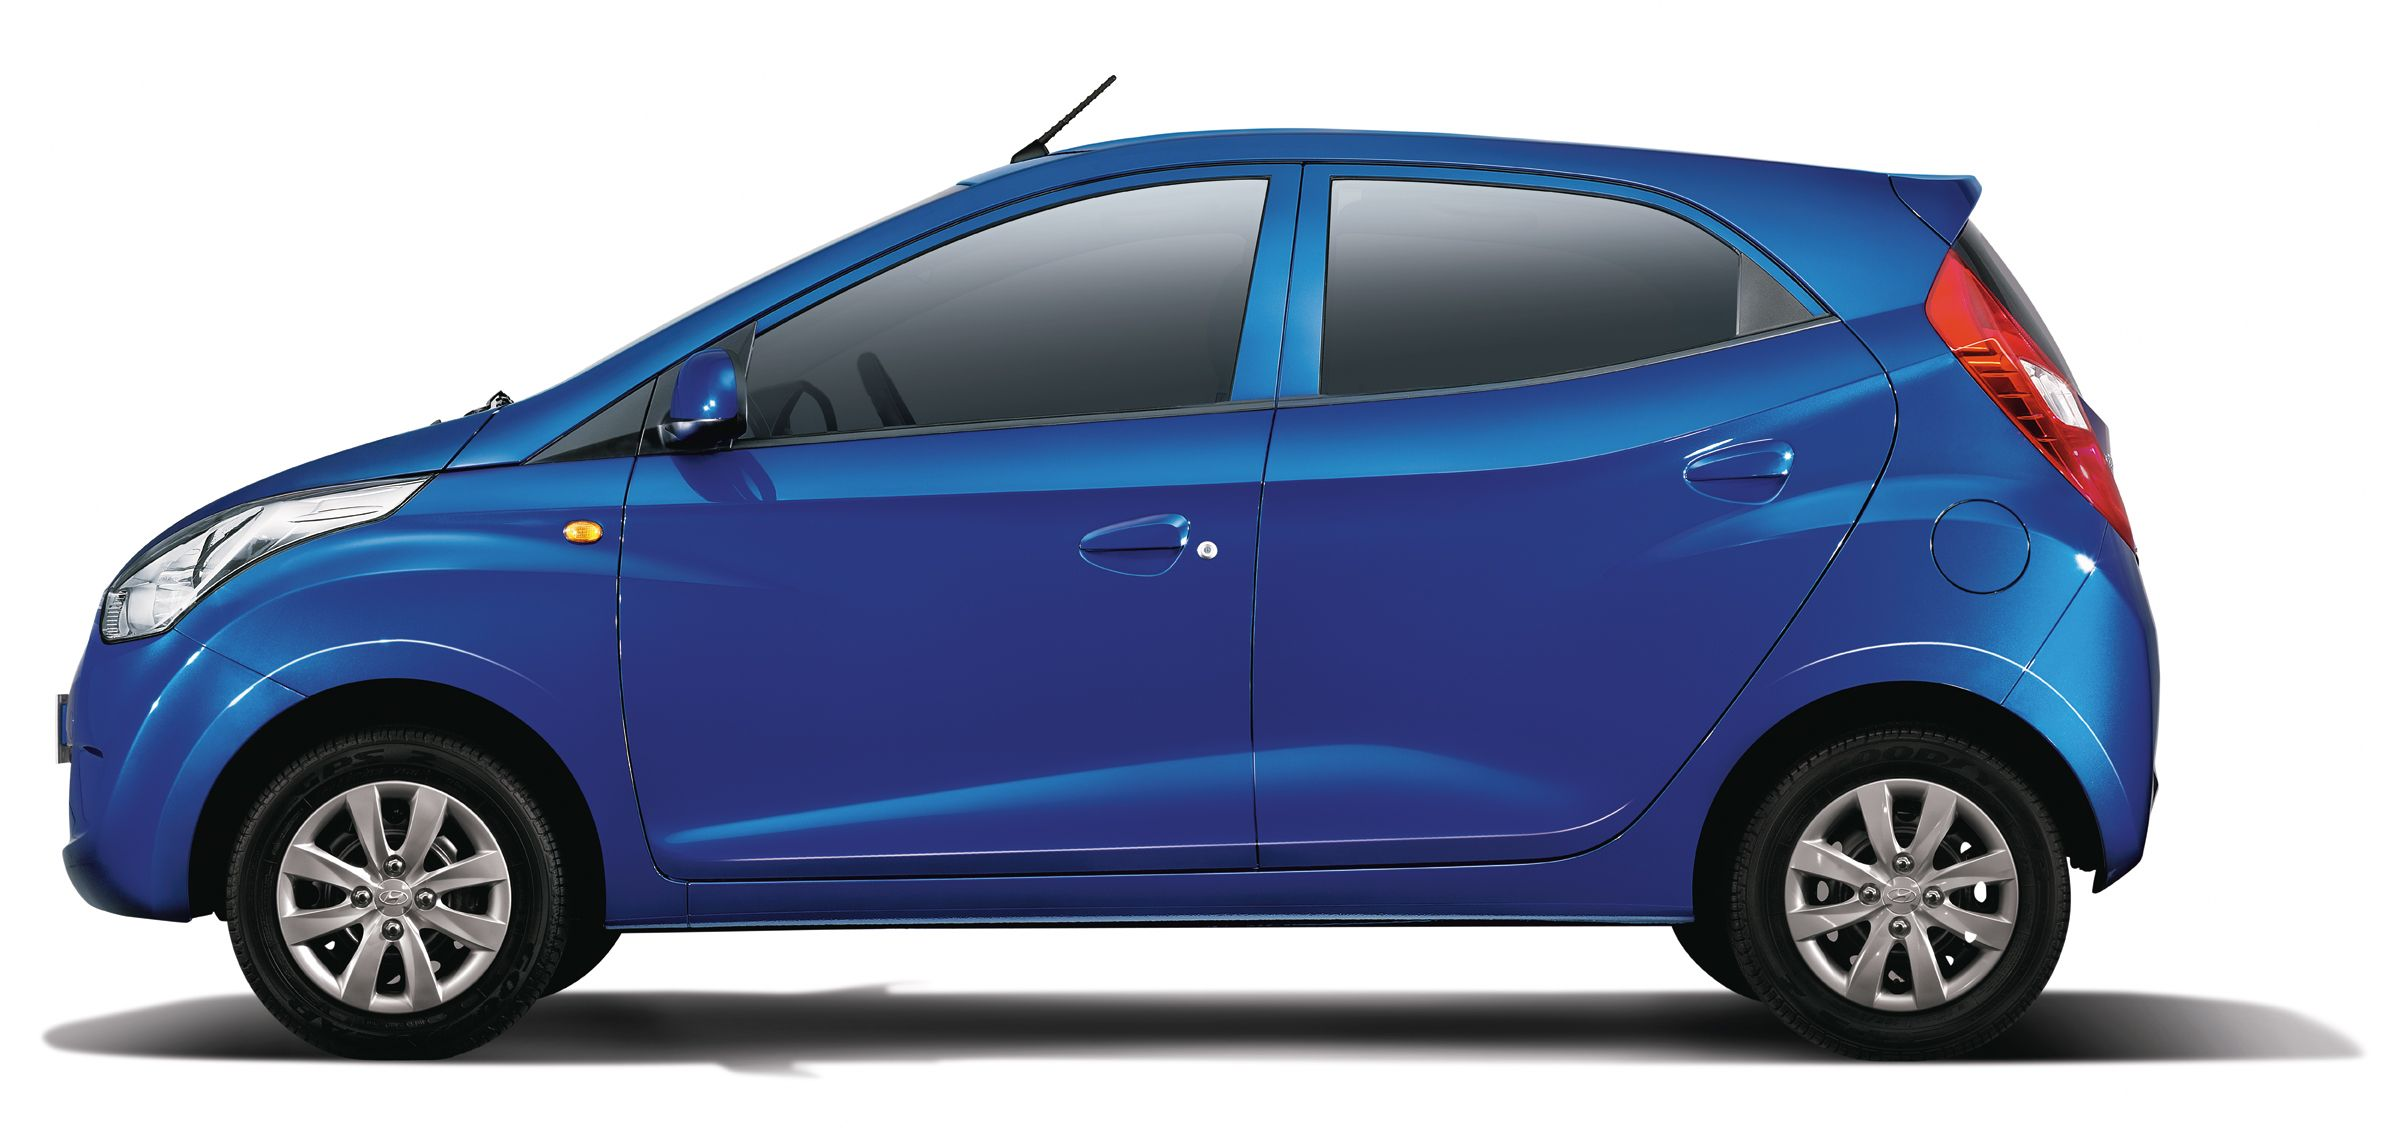 medium resolution of hyundai eon side reverse view